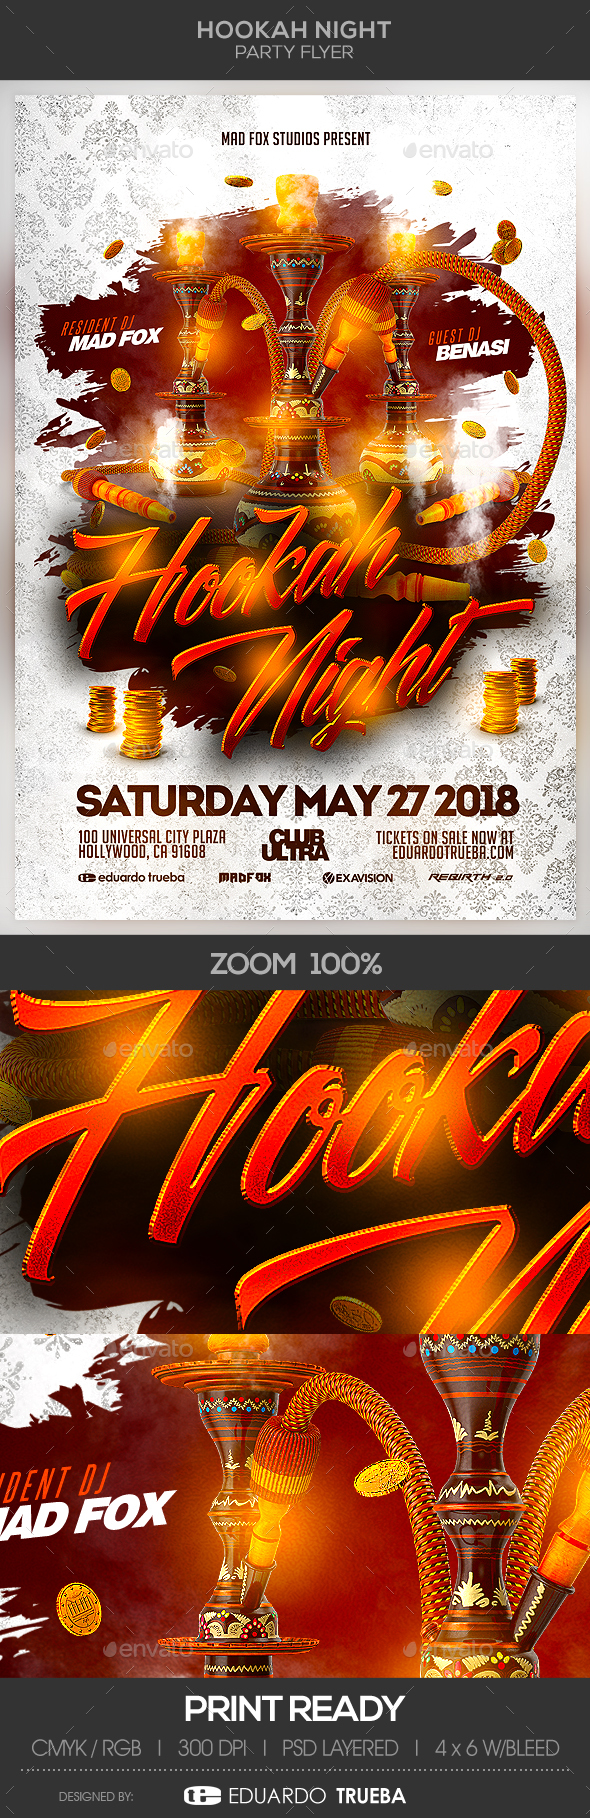 Hookah Night Party Flyer - Events Flyers